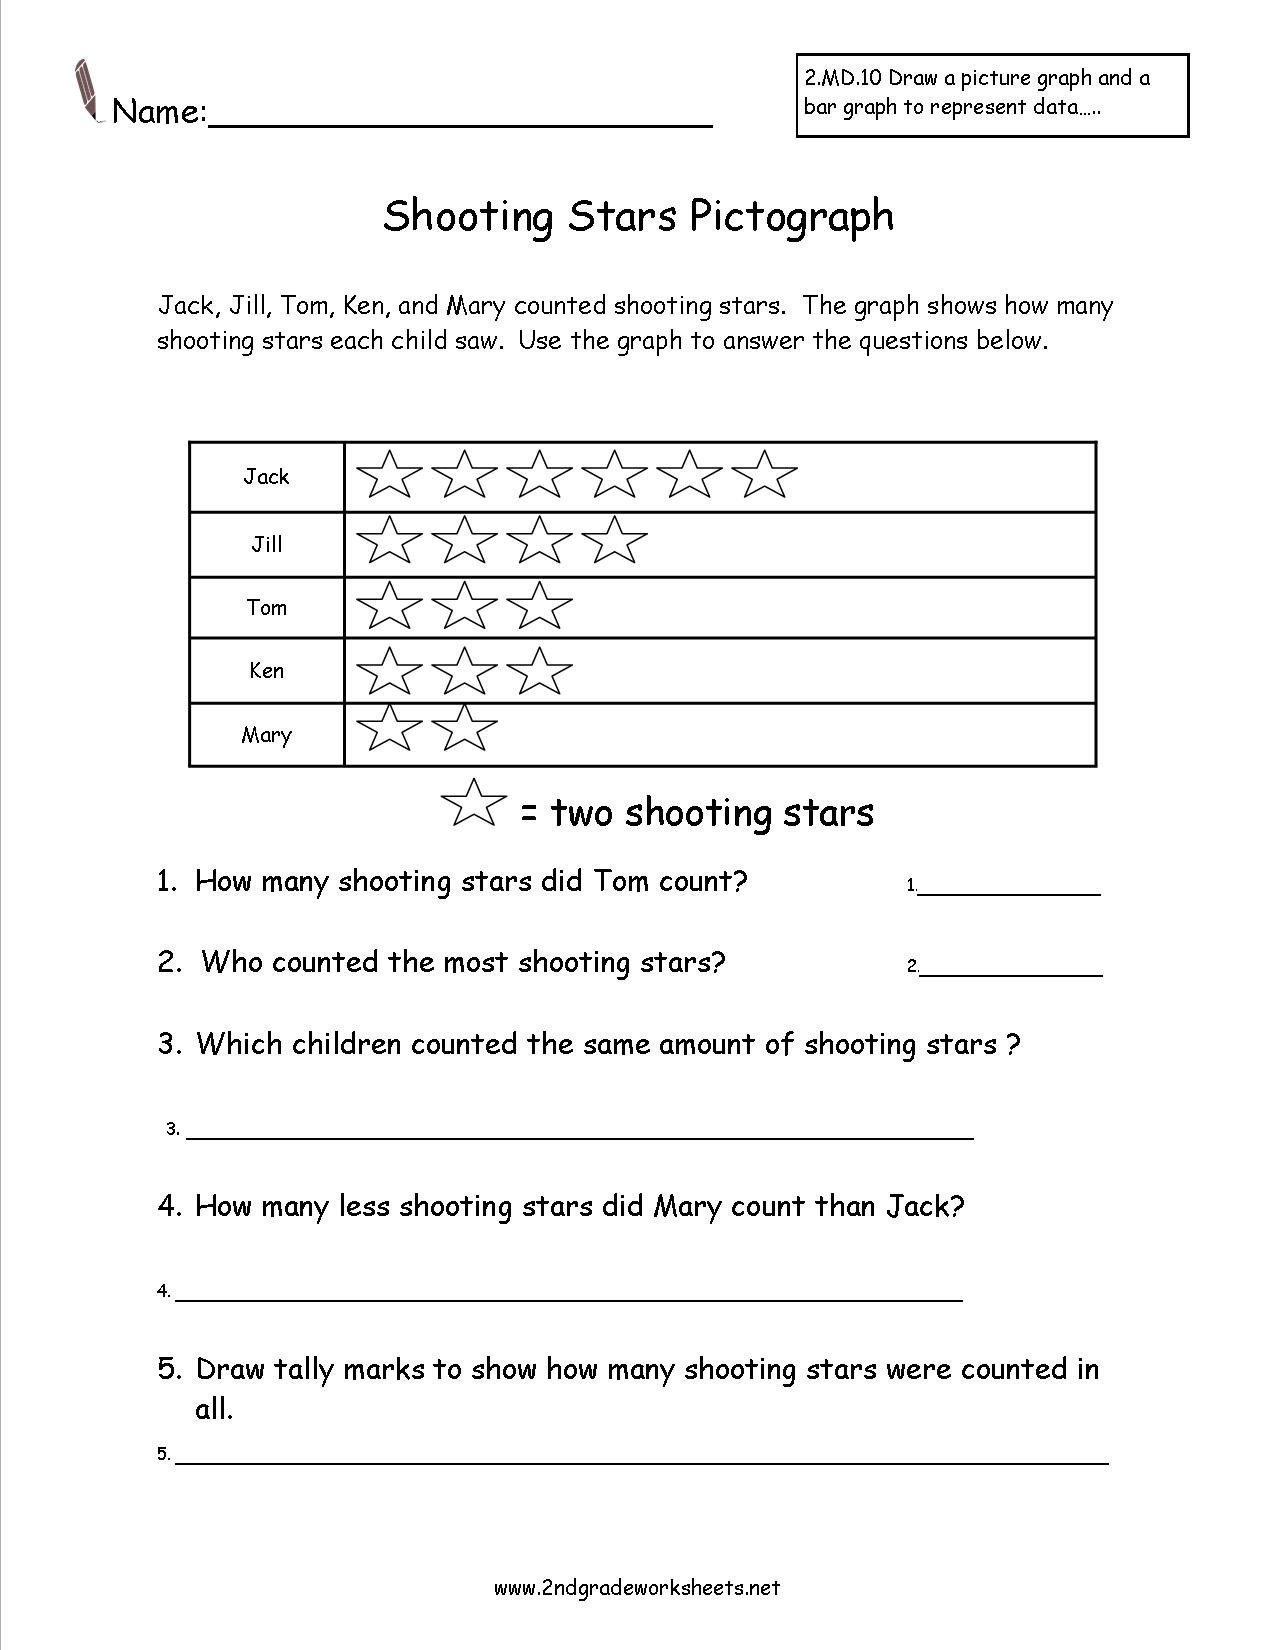 Awesome Collection Of Pictograph Worksheets 3rd Grade For Your